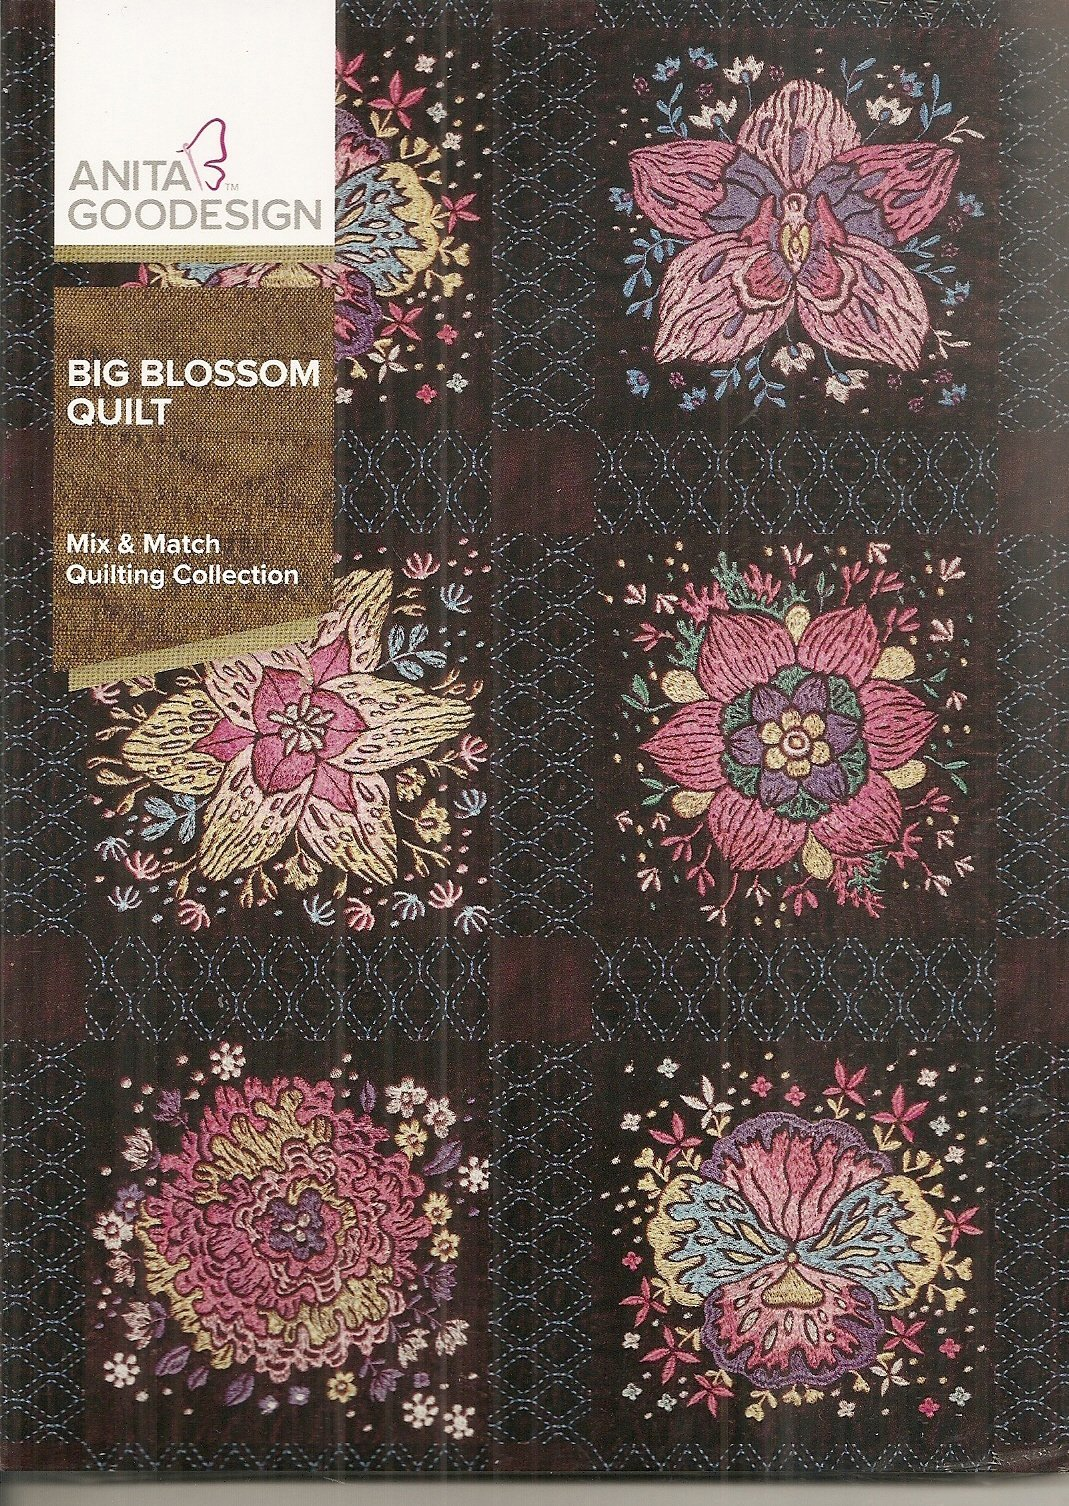 Anita Goodesign - Big Blossom Quilt